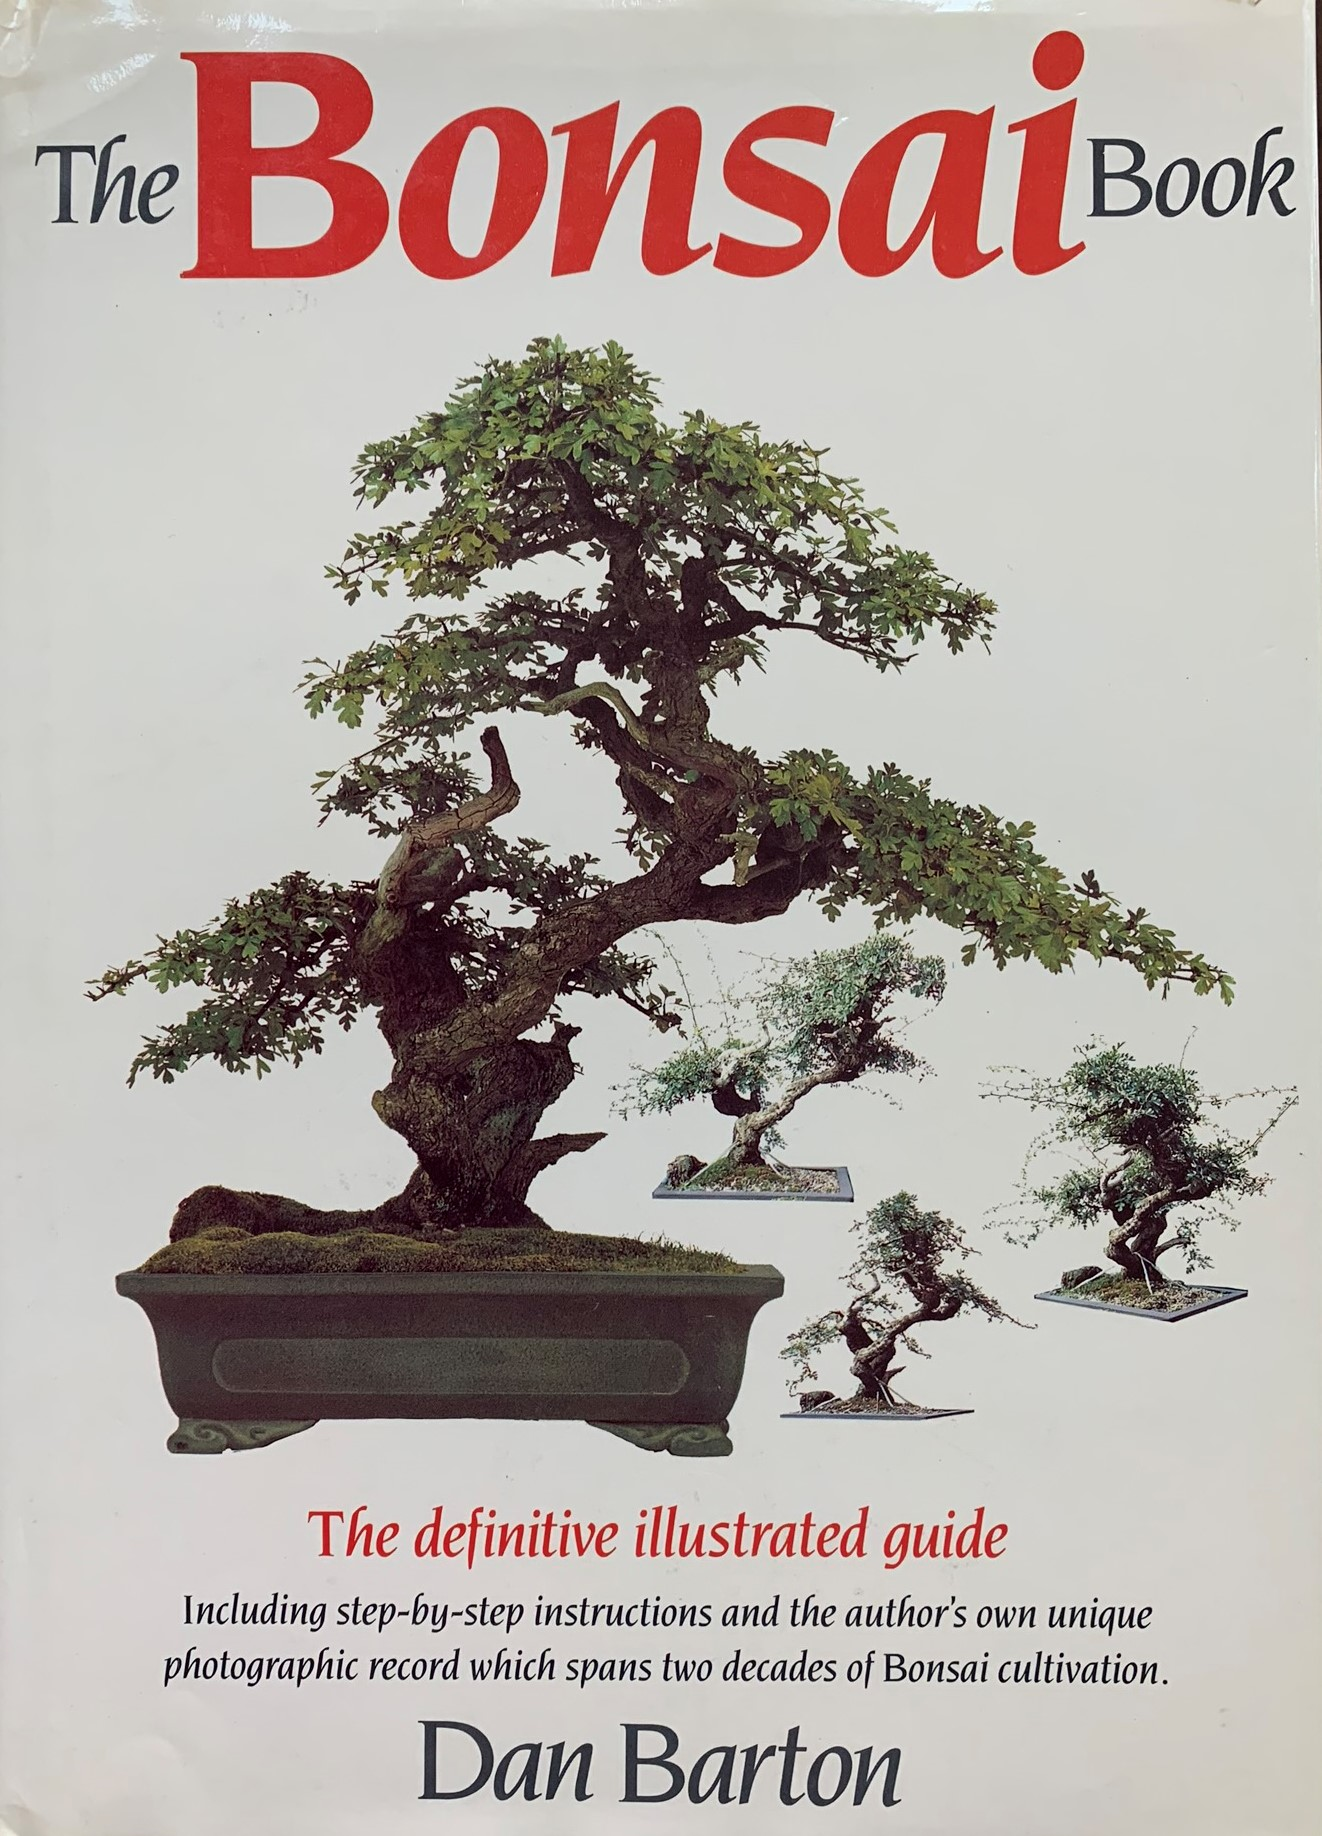 Barton, Dan; The Bonsai Book; 160 pages.